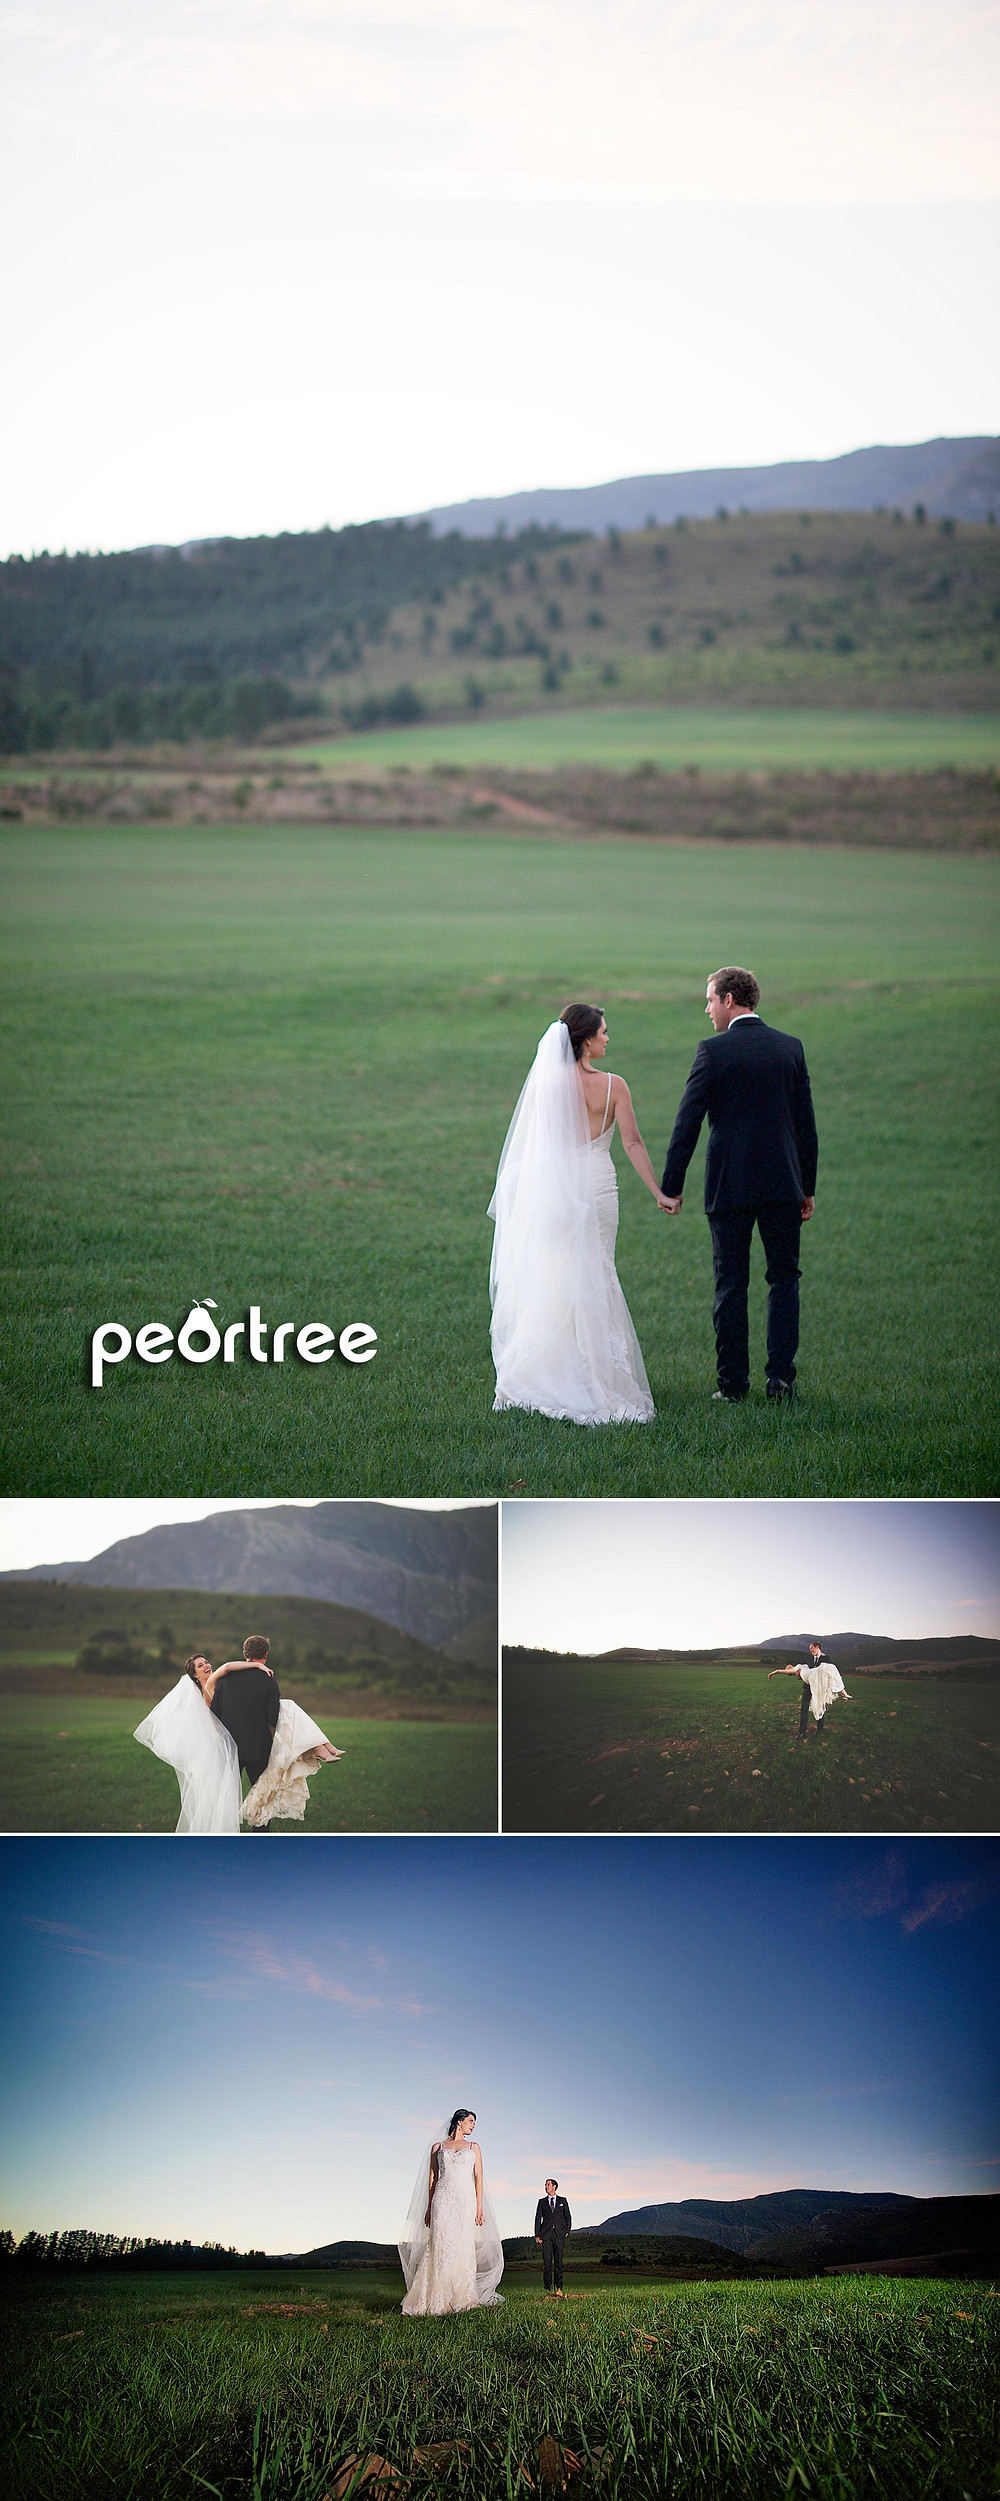 elandskloof greyton autumn wedding 29